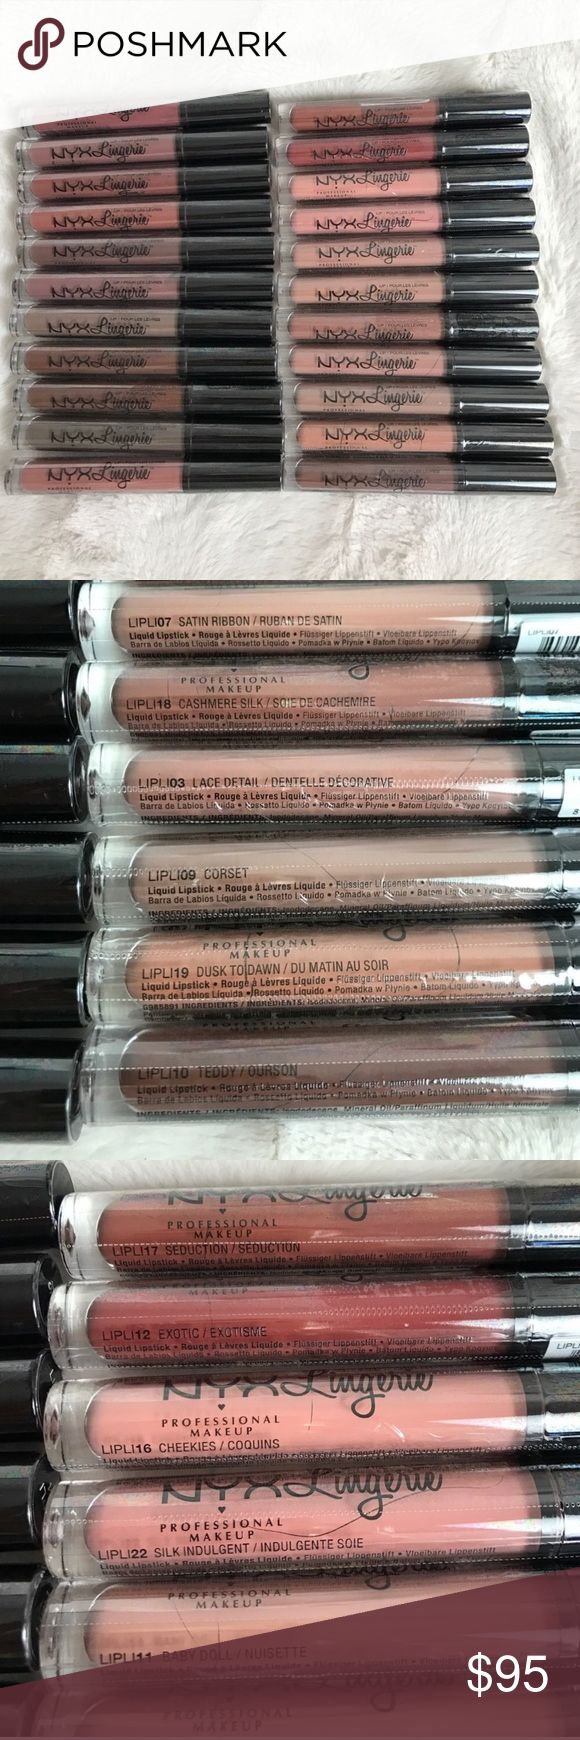 NEW SEALED NYX LINGERIE LIQUID LIPSTICK PUSH UP Ended up trying one of these (not pictured) and the formula was not for me so I'm listing the rest. Willing to split in smaller lots just comment which colors you want and I can set up a separate listing for you and let you know the price. These are all brand new and sealed. (Found one extra in my pile so there are 23 shades total - didn't wanna set up the shot again so I just added pics) NYX Cosmetics Makeup Lipstick